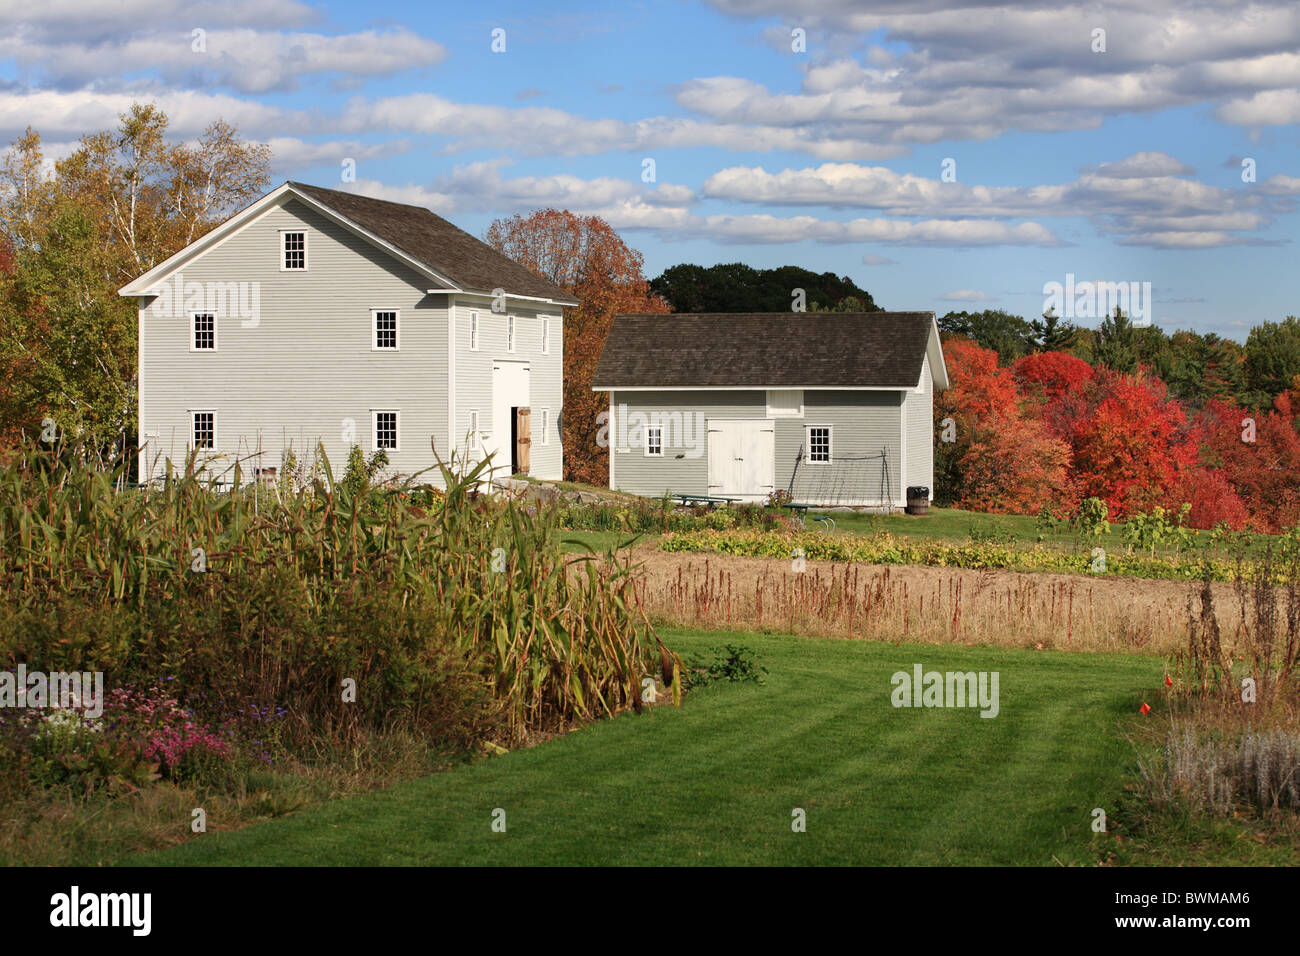 Old Barns Usa Stock Photos Amp Old Barns Usa Stock Images